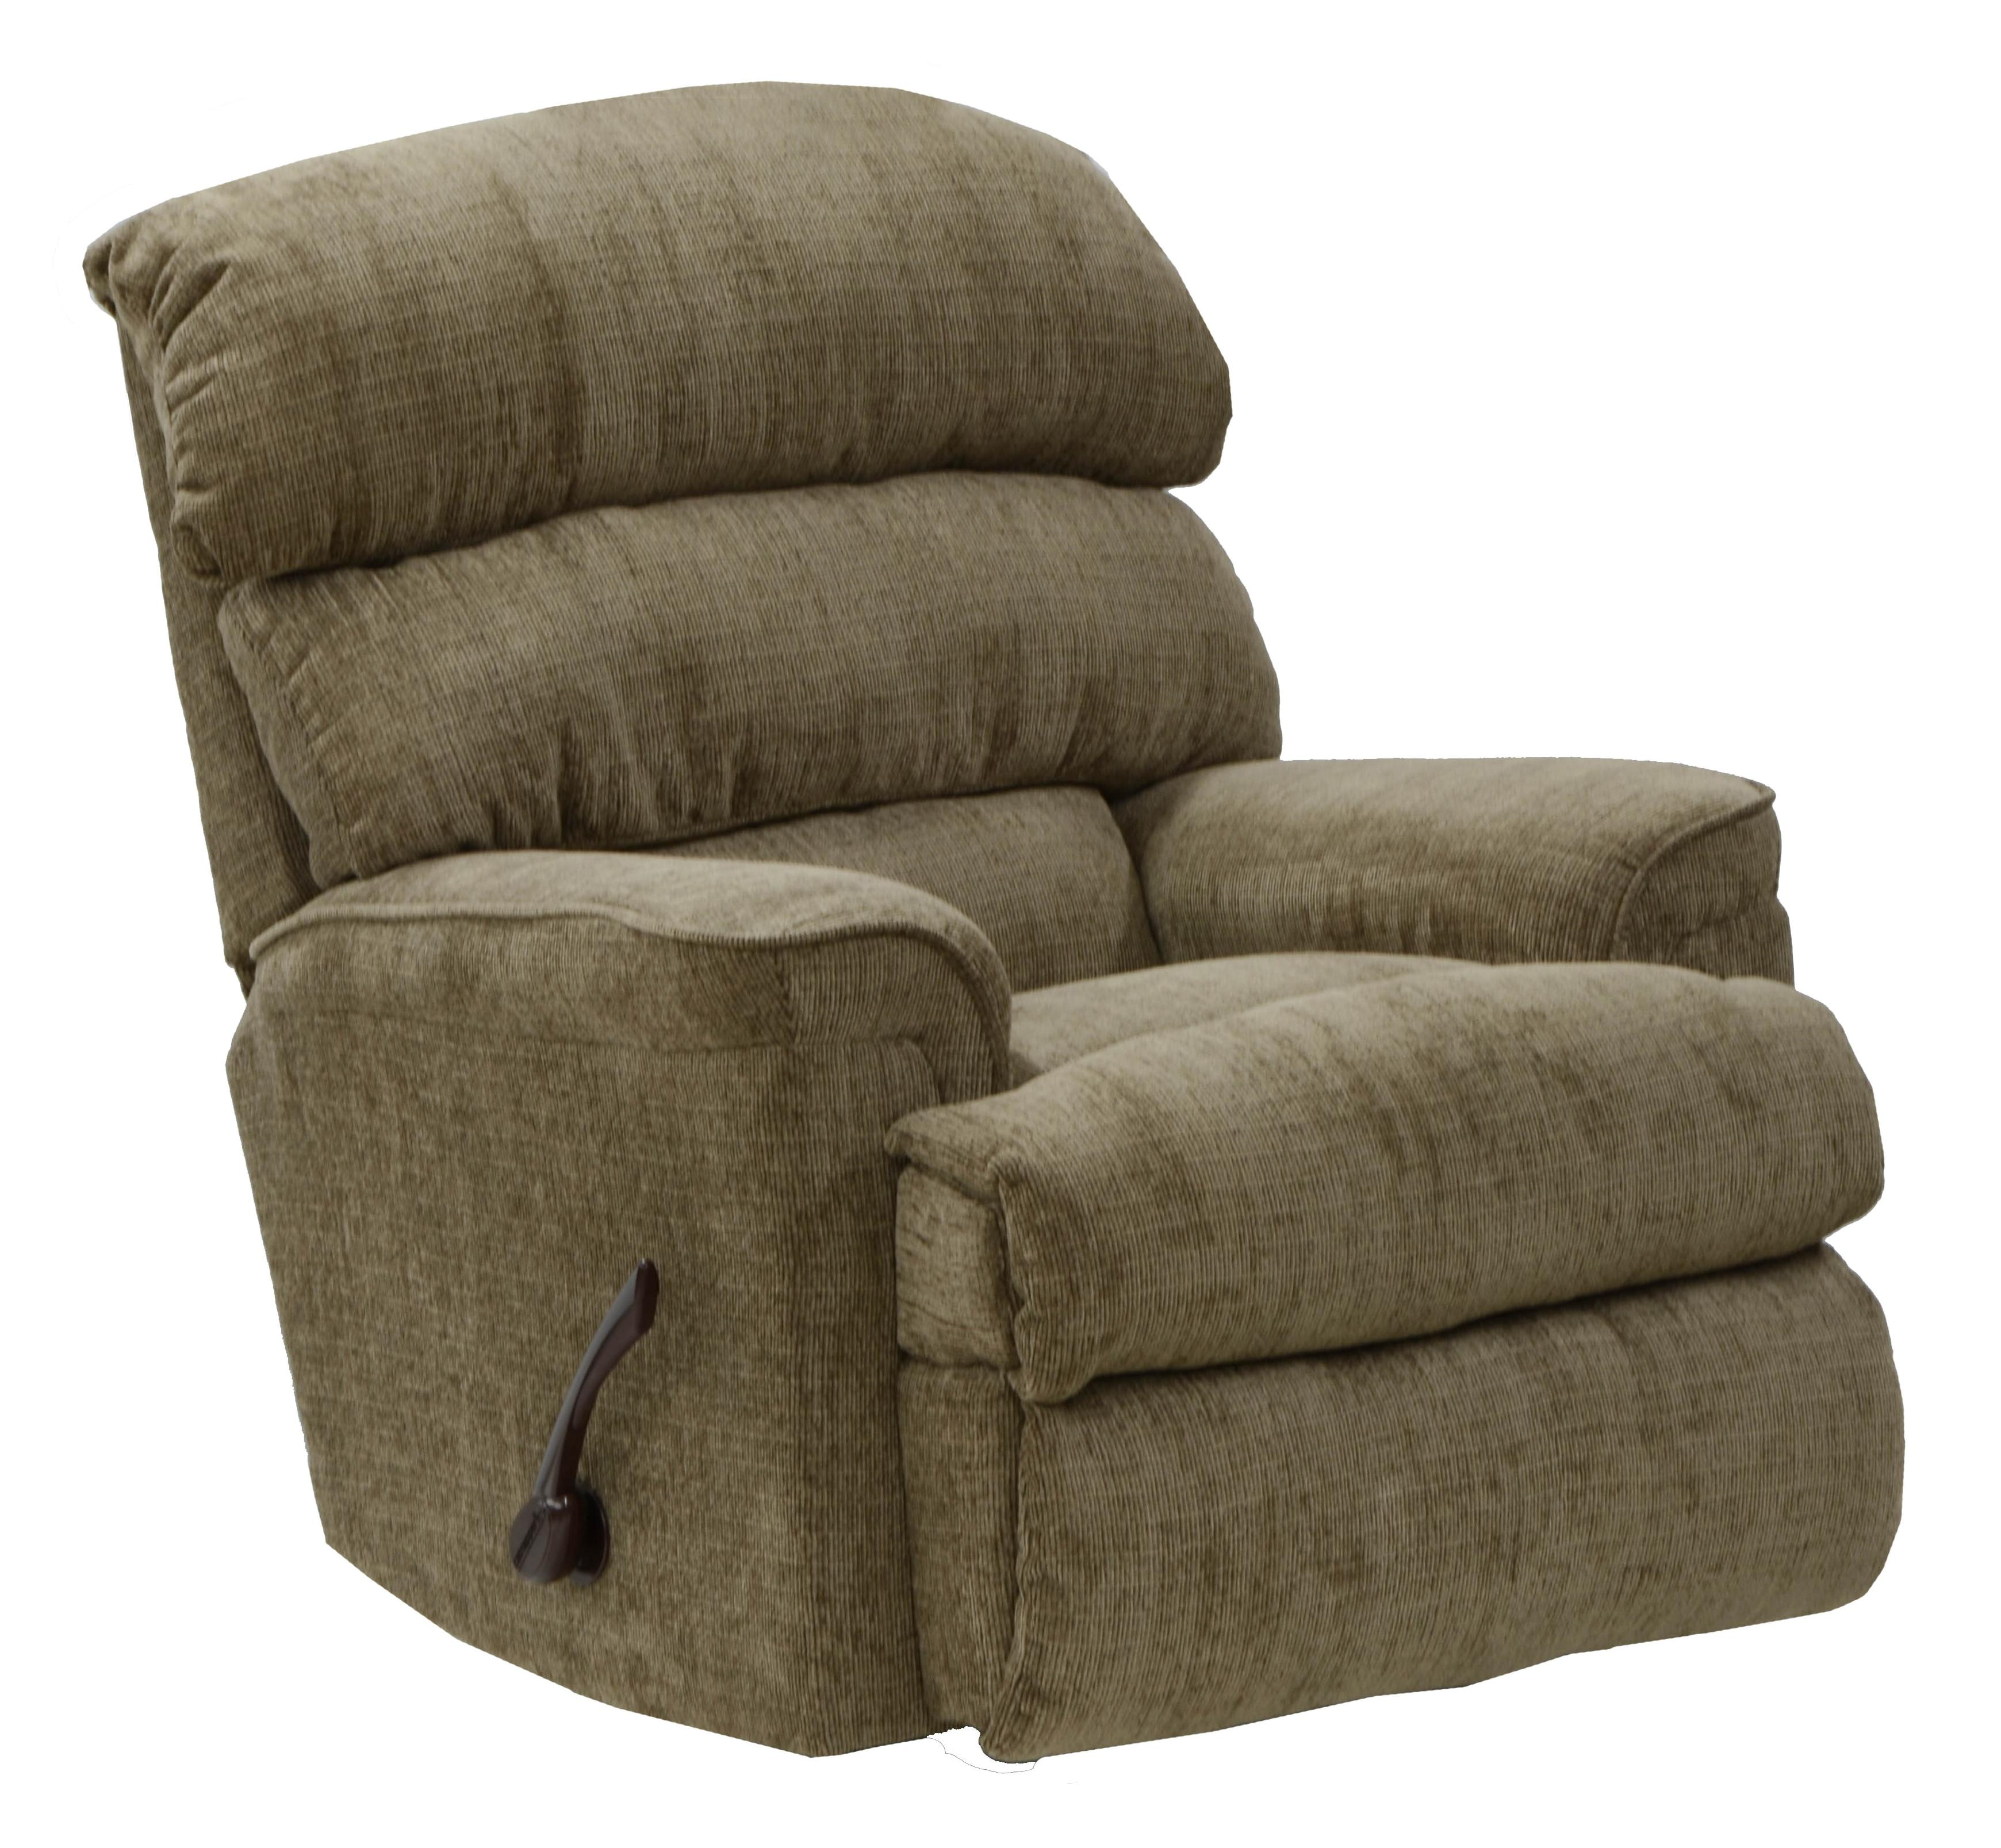 Catnapper Chair Catnapper Motion Chairs And Recliners Pearson Rocker